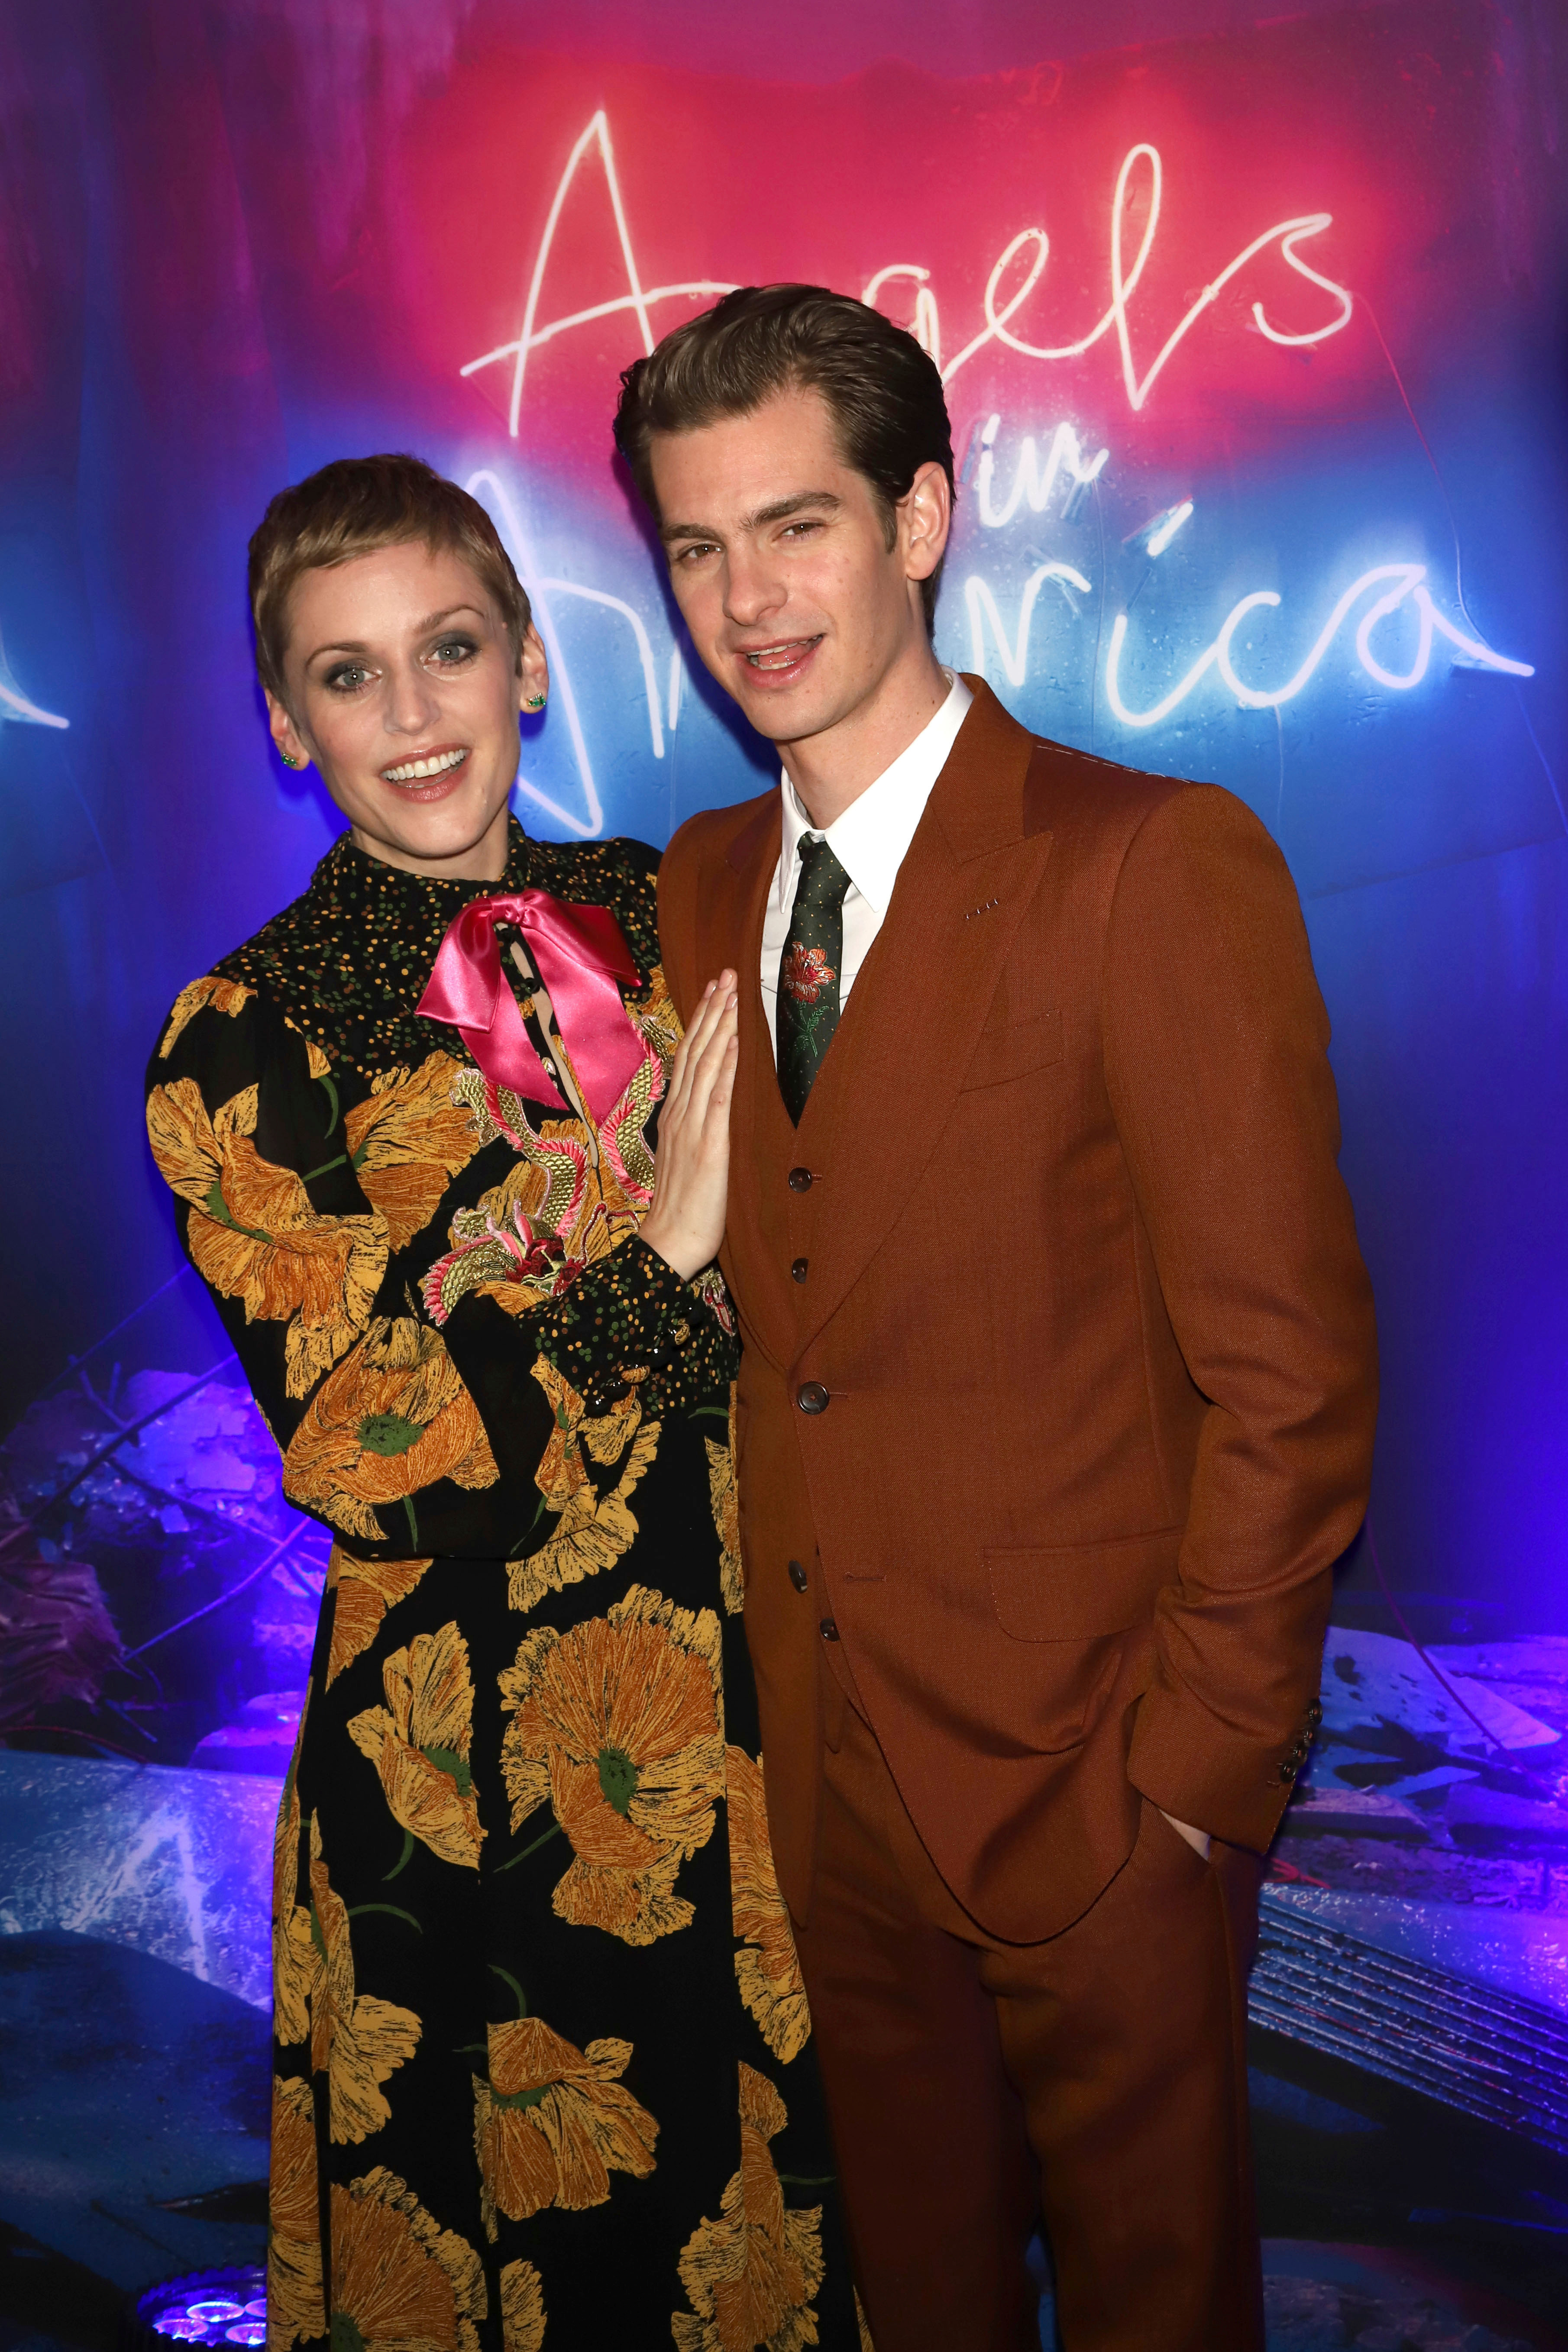 """Denise Gough and Andrew Garfield attend the after party for the """"Angels in America"""" Broadway revival opening night at Espace in New York City on March 25, 2018."""